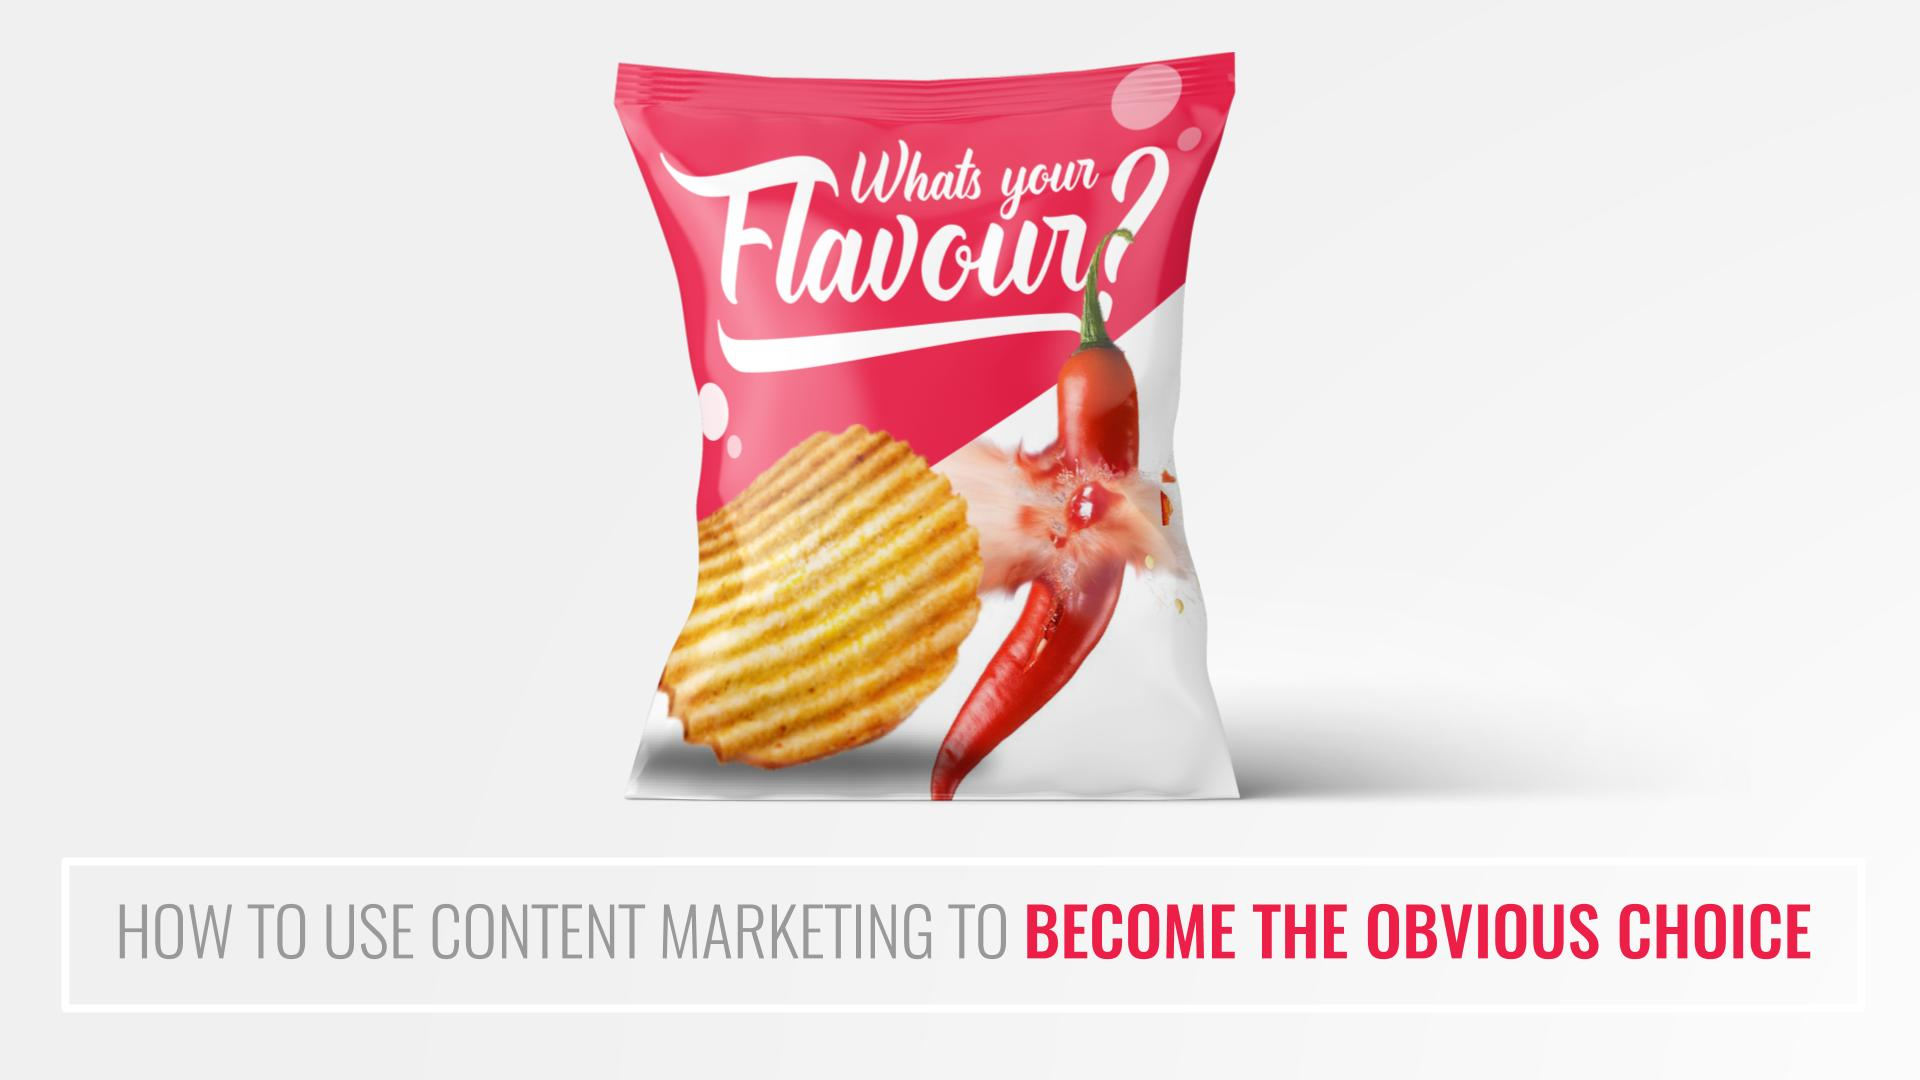 How to Use Content Marketing to Become the Obvious Choice